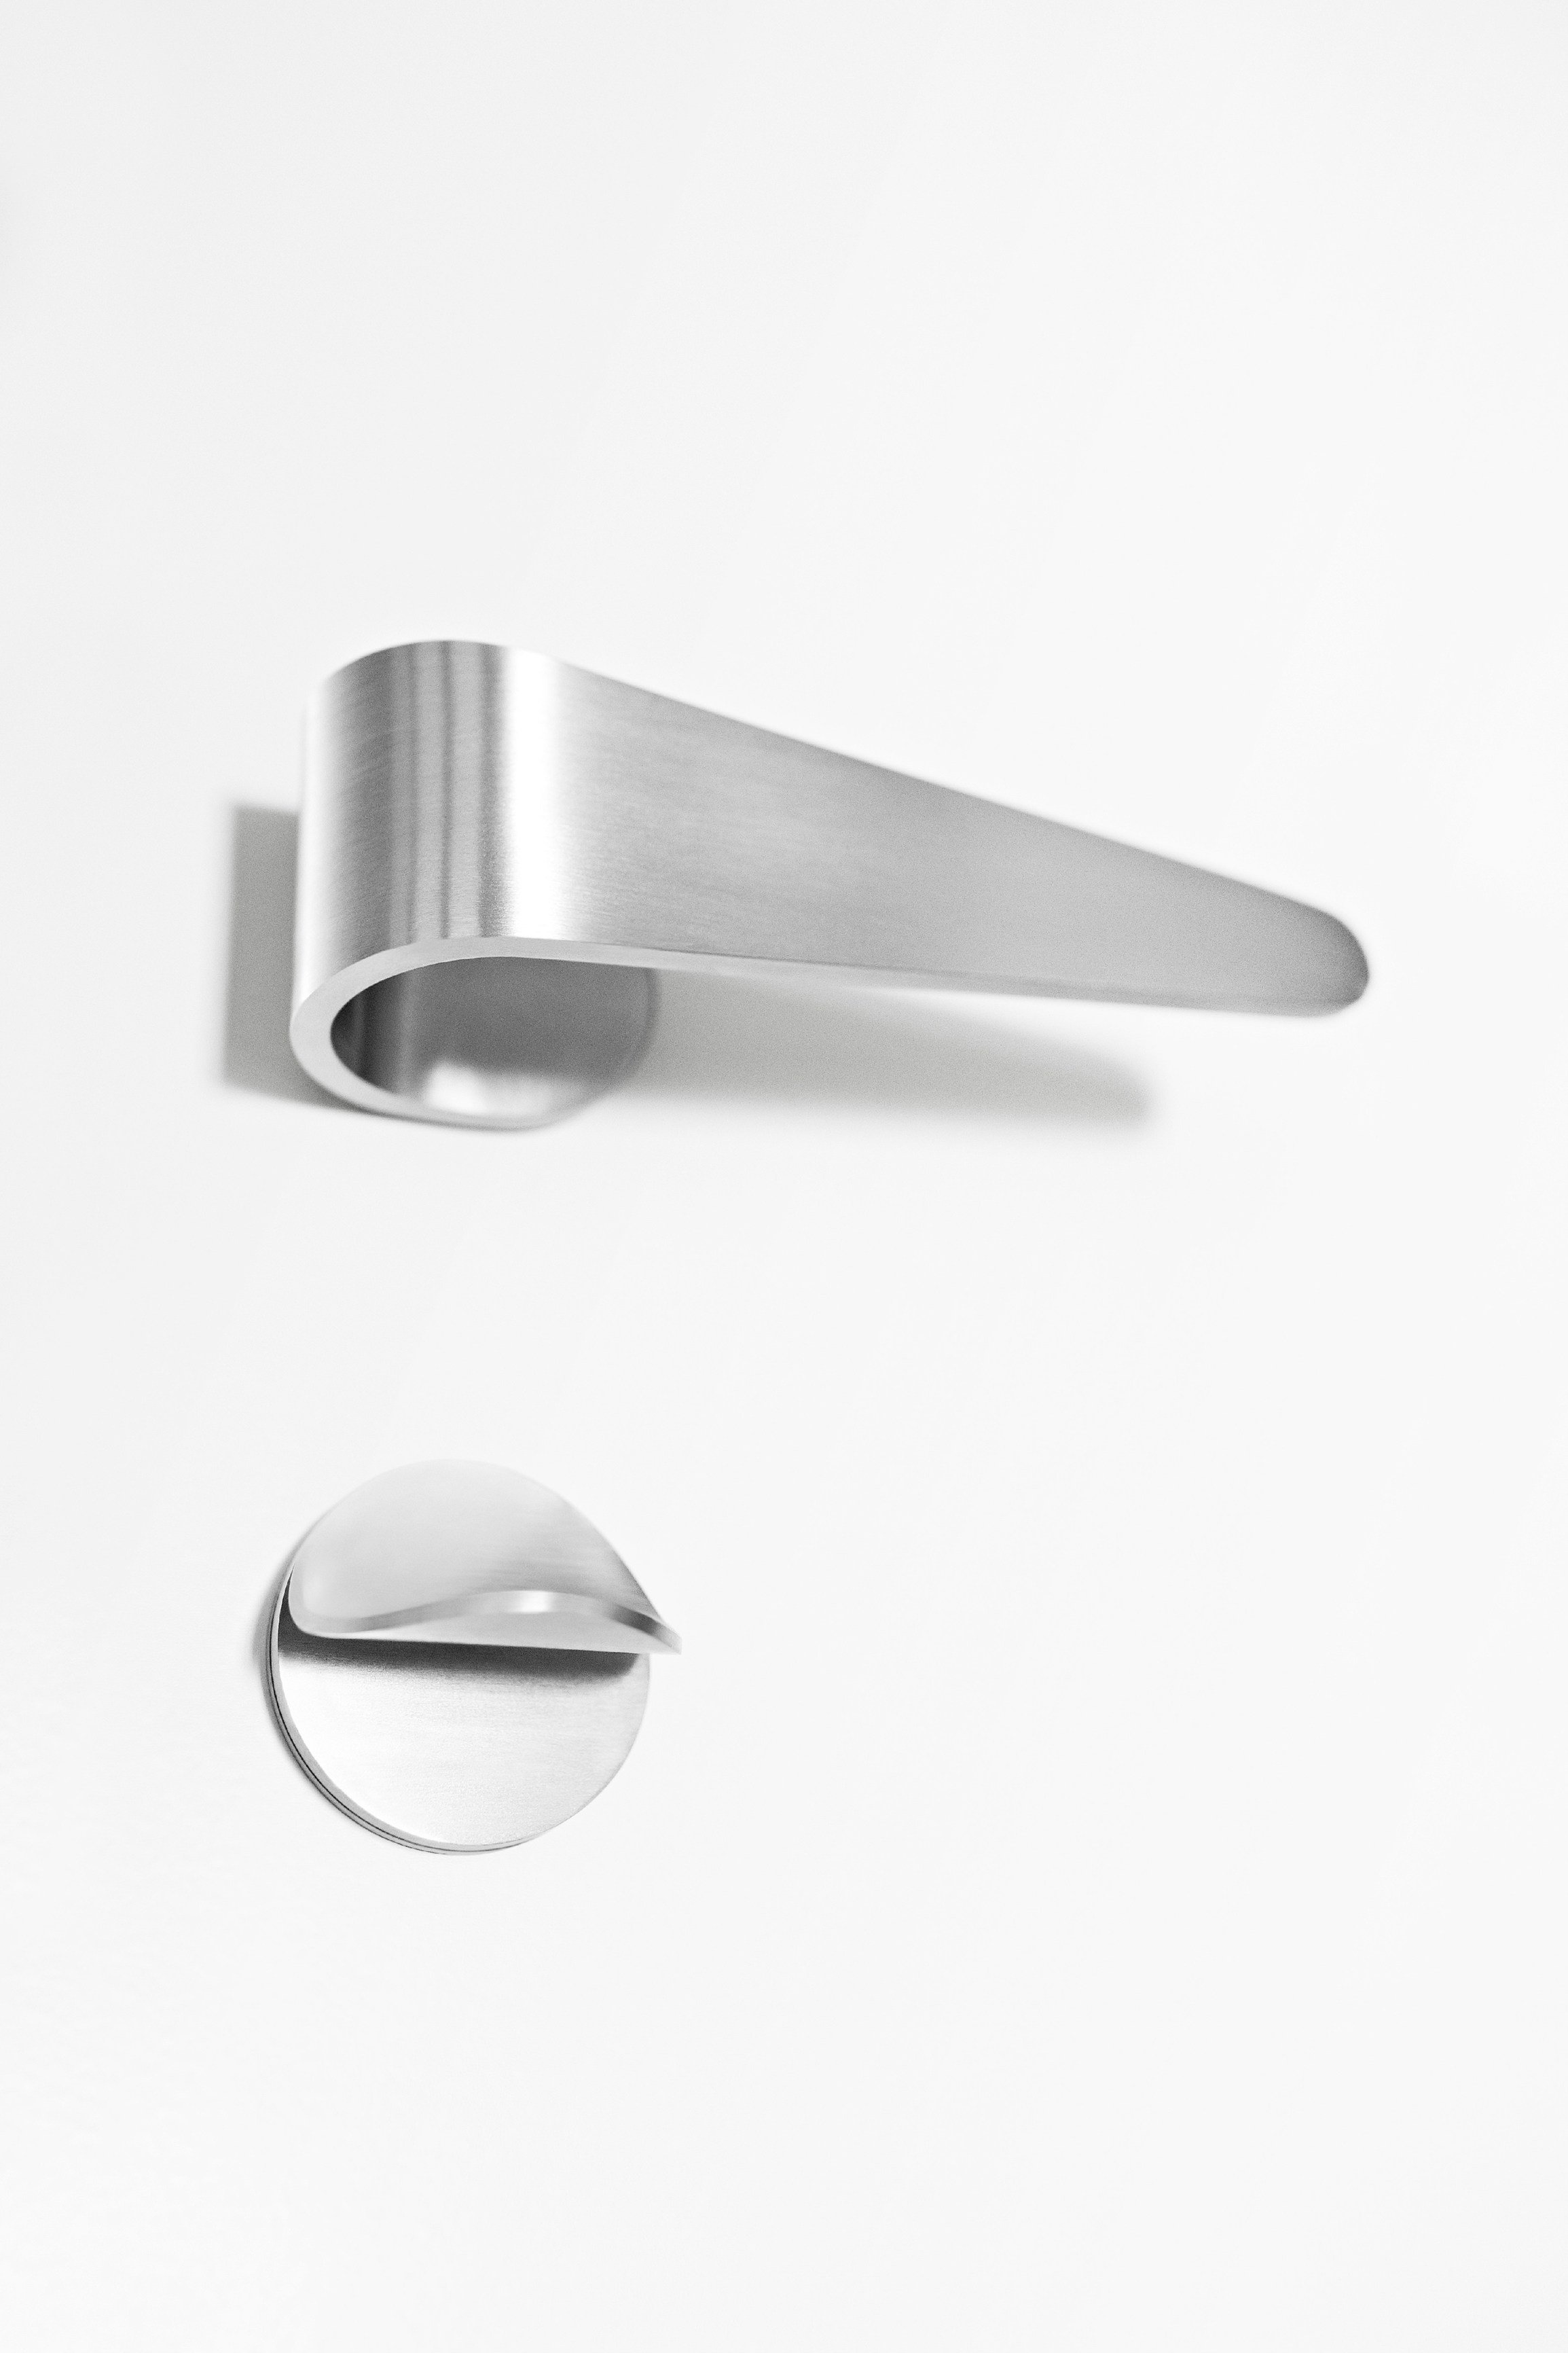 Fold Door Handle With Lock By Formani Holland B V Design